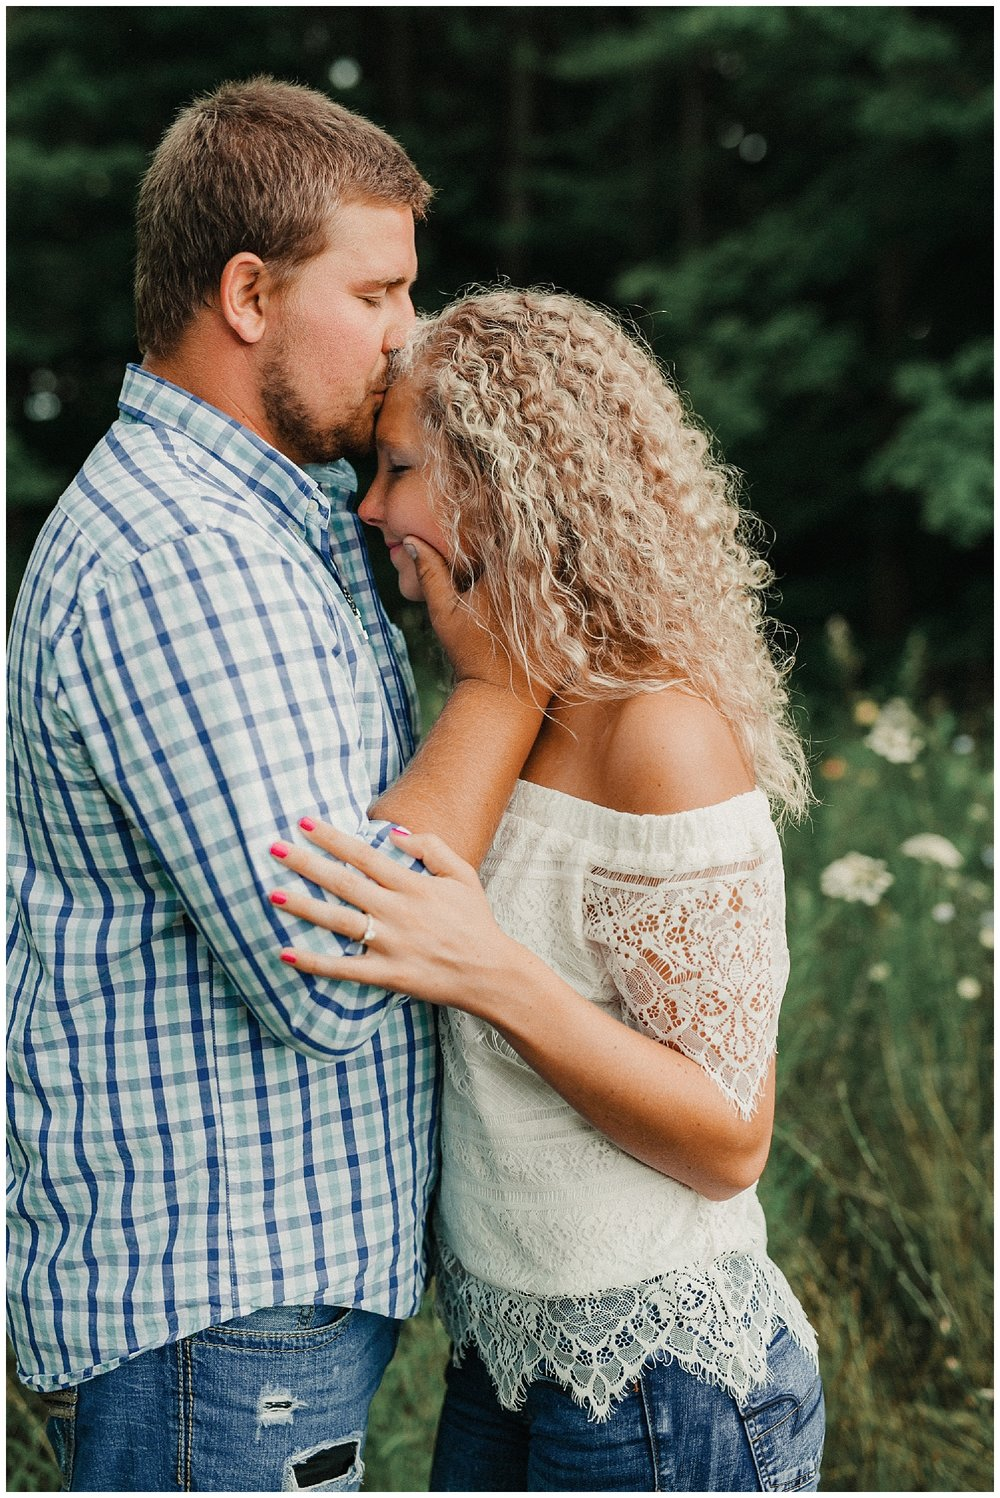 lindybeth photography - engagement pictures - nikki dayton-195.jpg